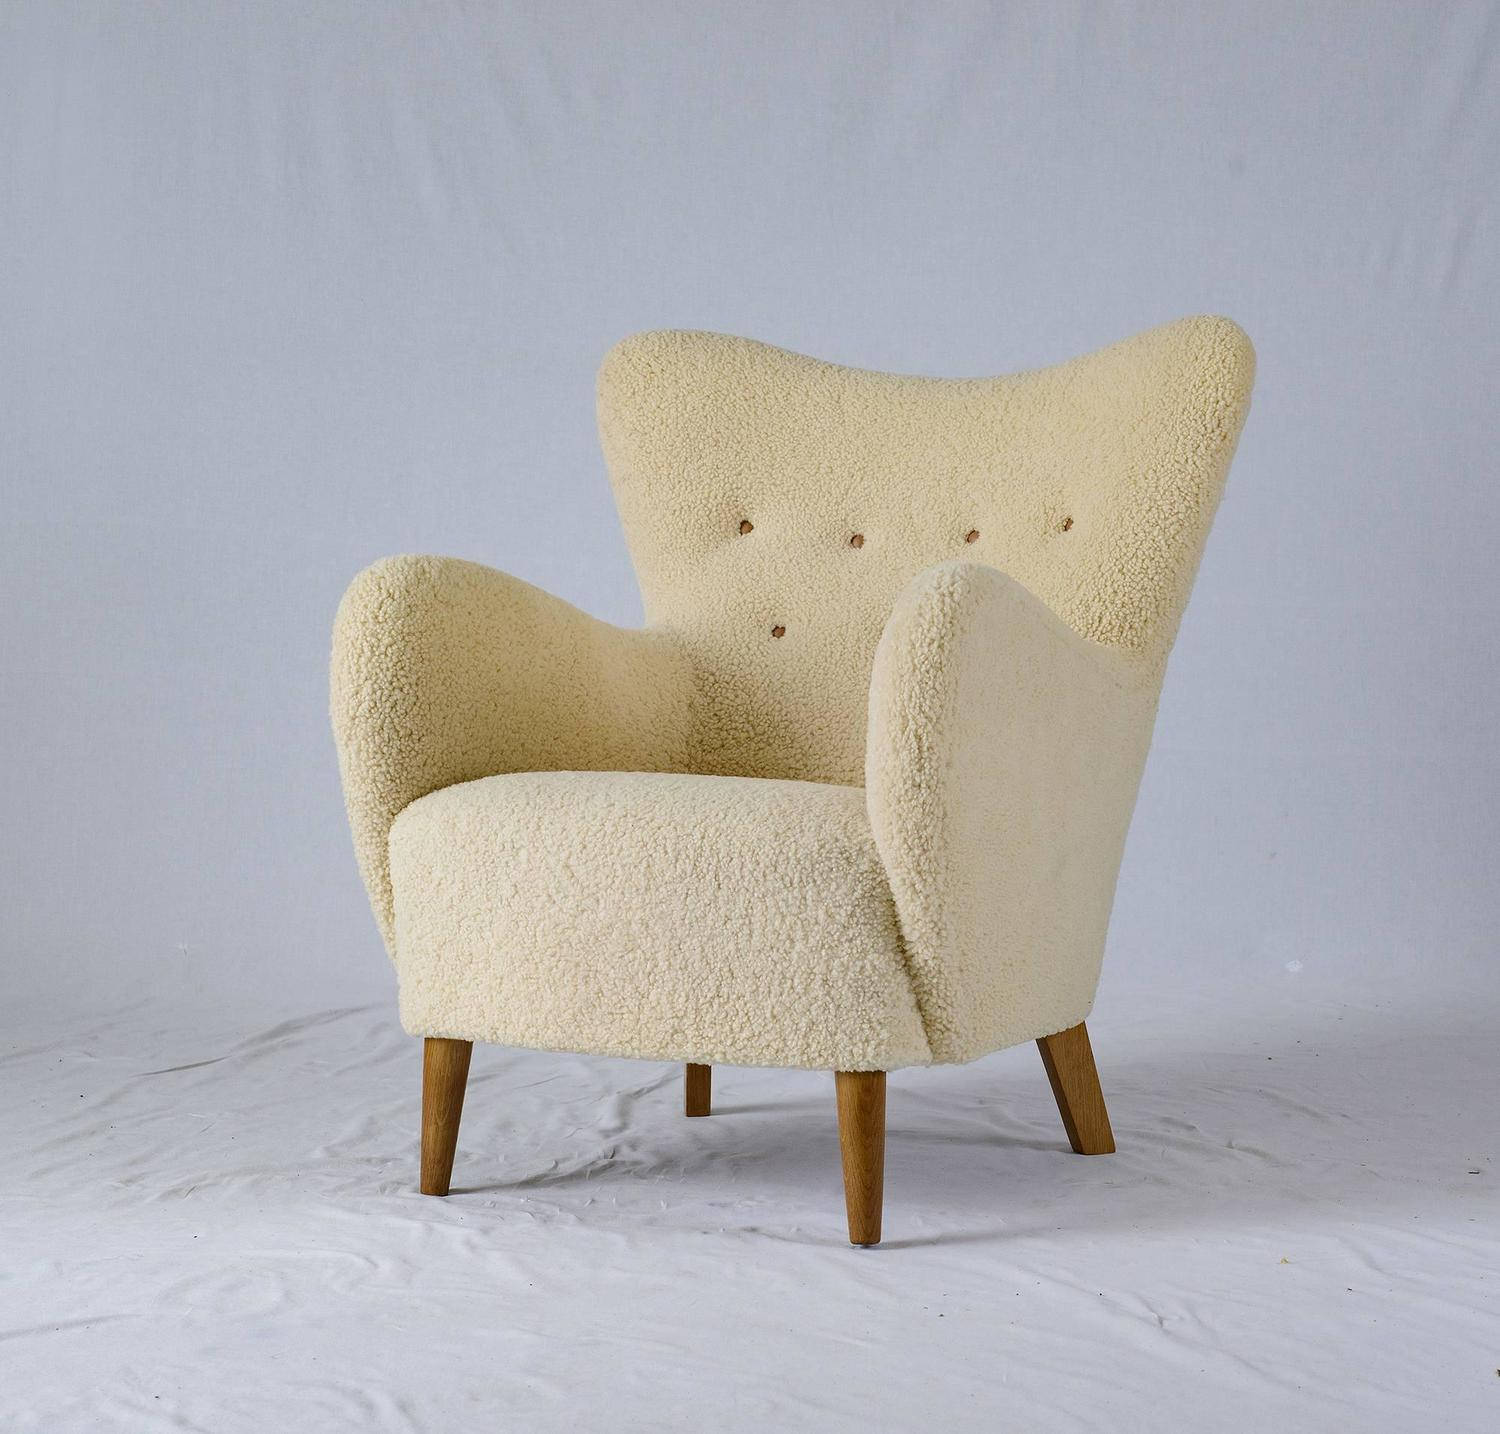 sheepskin chair covers for recliners uk scooter chairs sale scandinavian lounge at 1stdibs